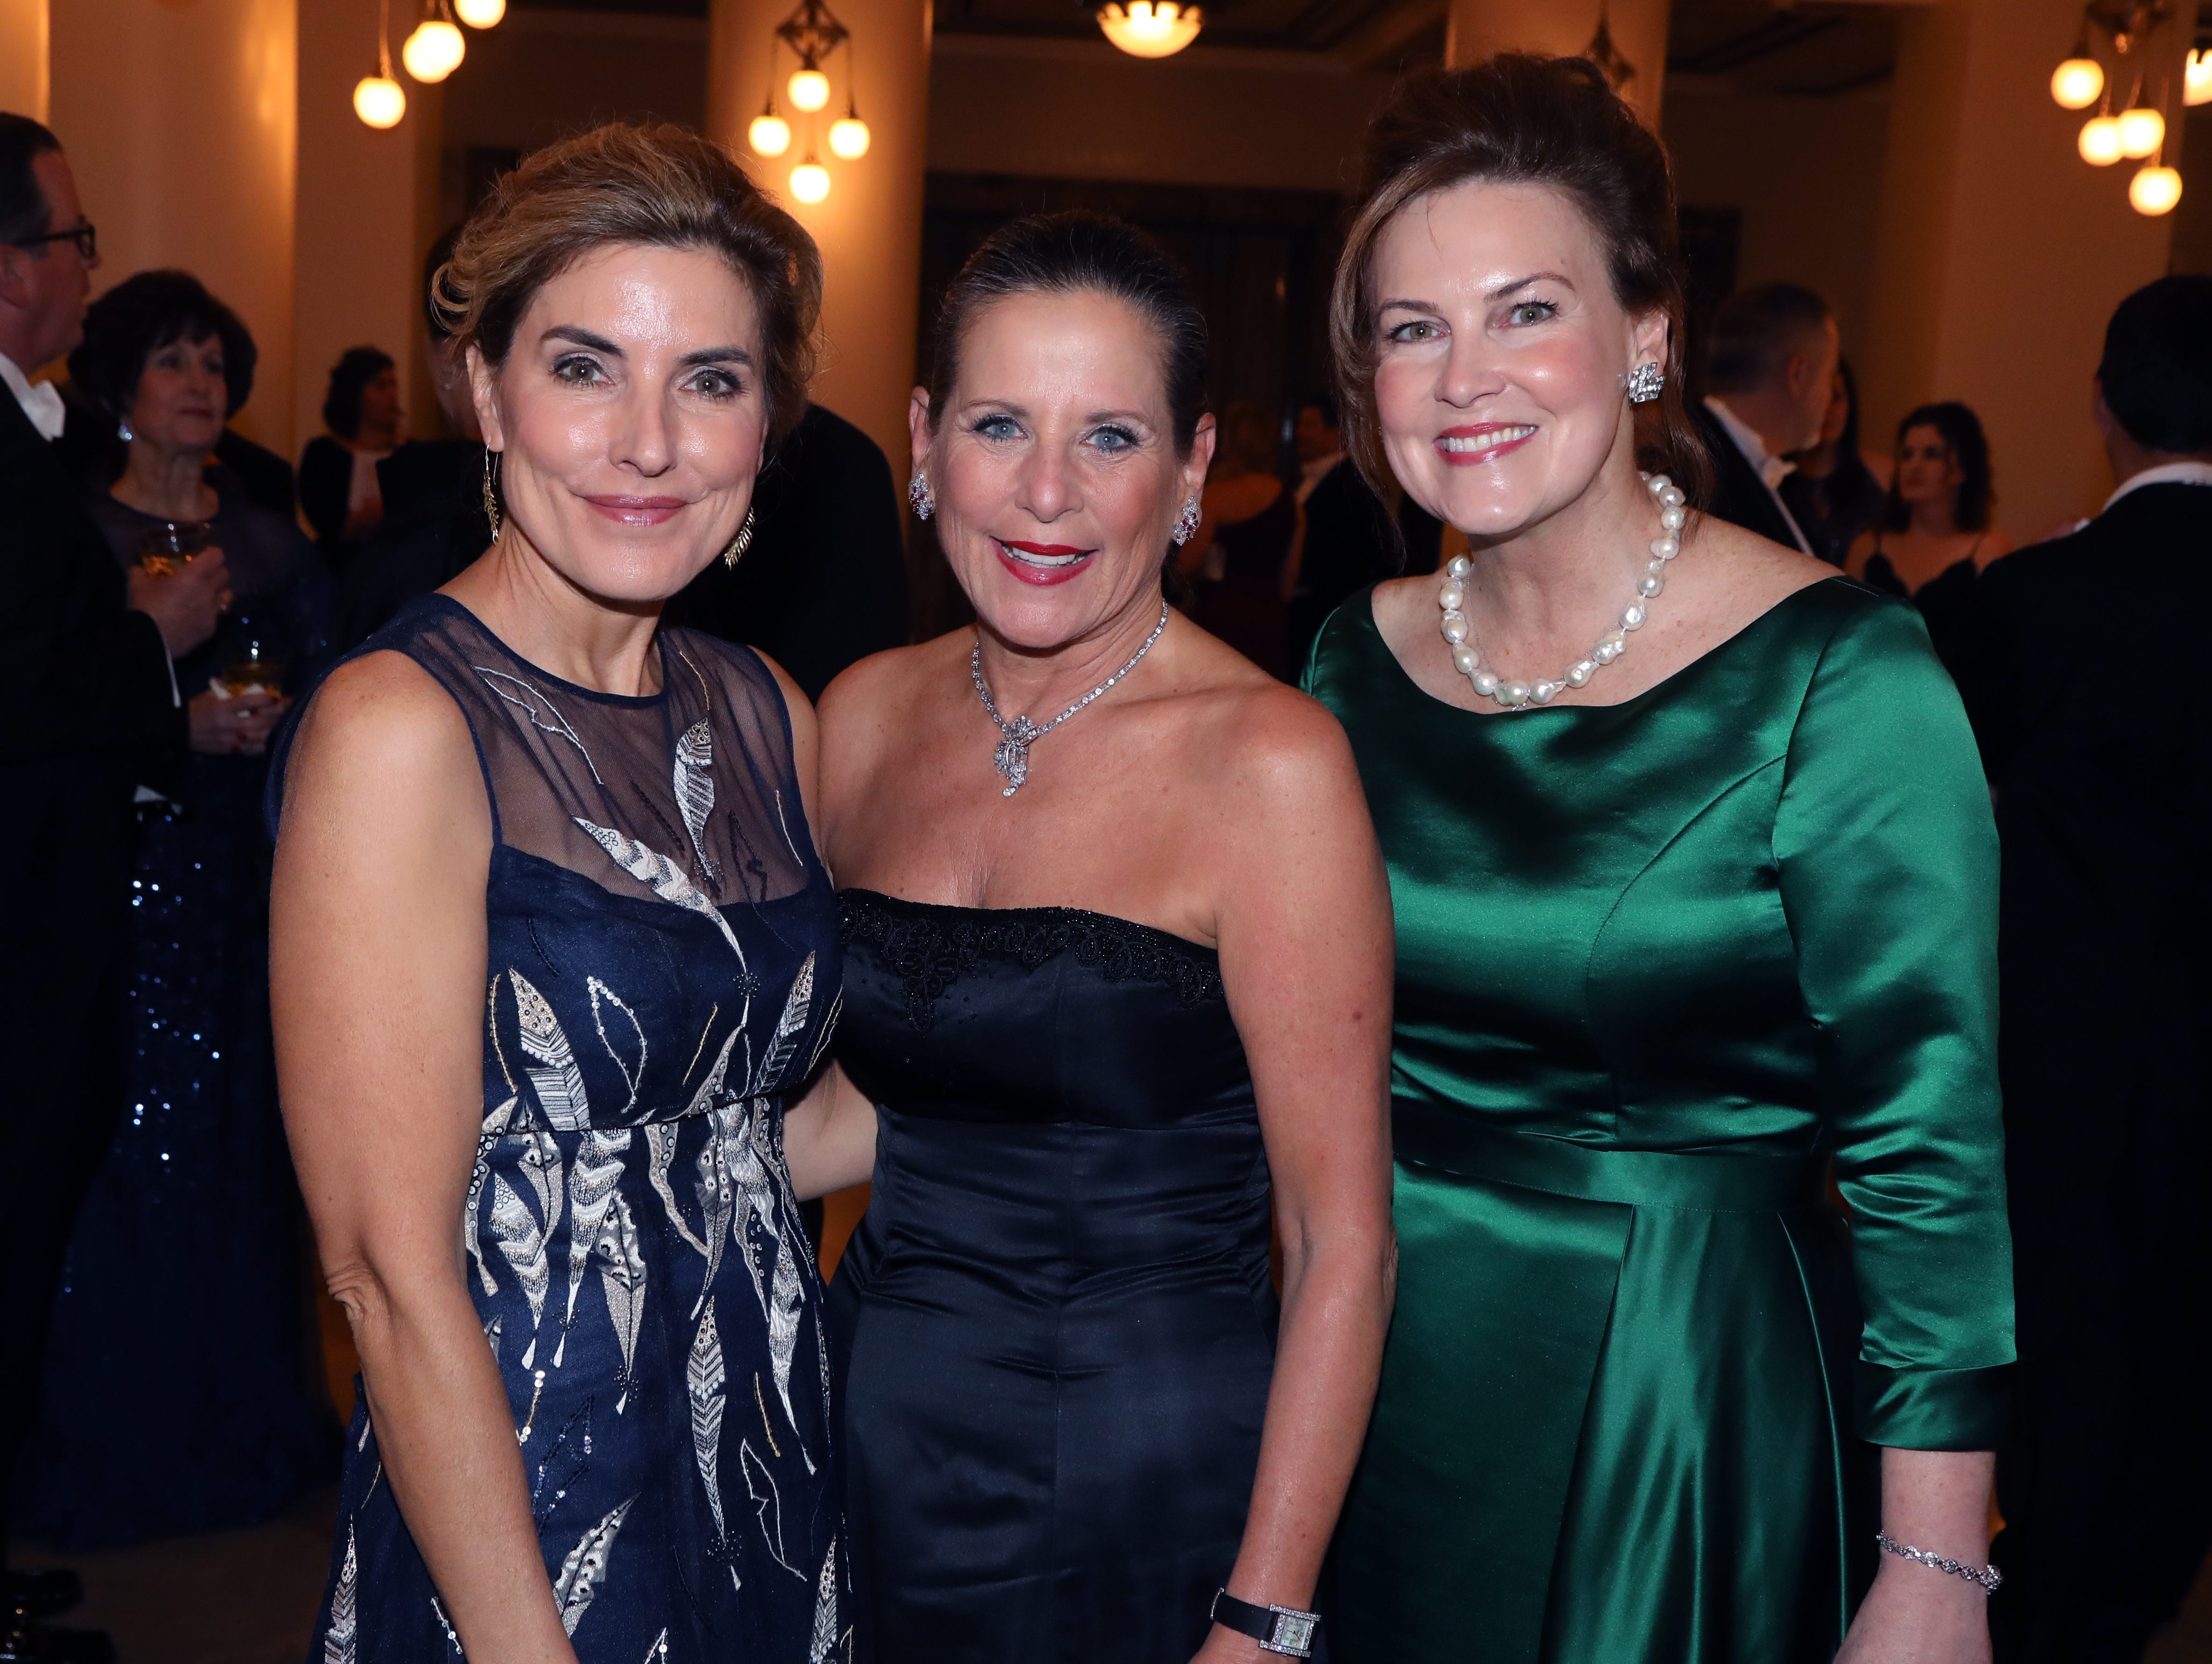 Katie Crumbo, Julie Boehm, Laurie Seabury at the 34th annual Symphony Ball on Saturday, December 8, 2018, at Schermerhorn Symphony Center.